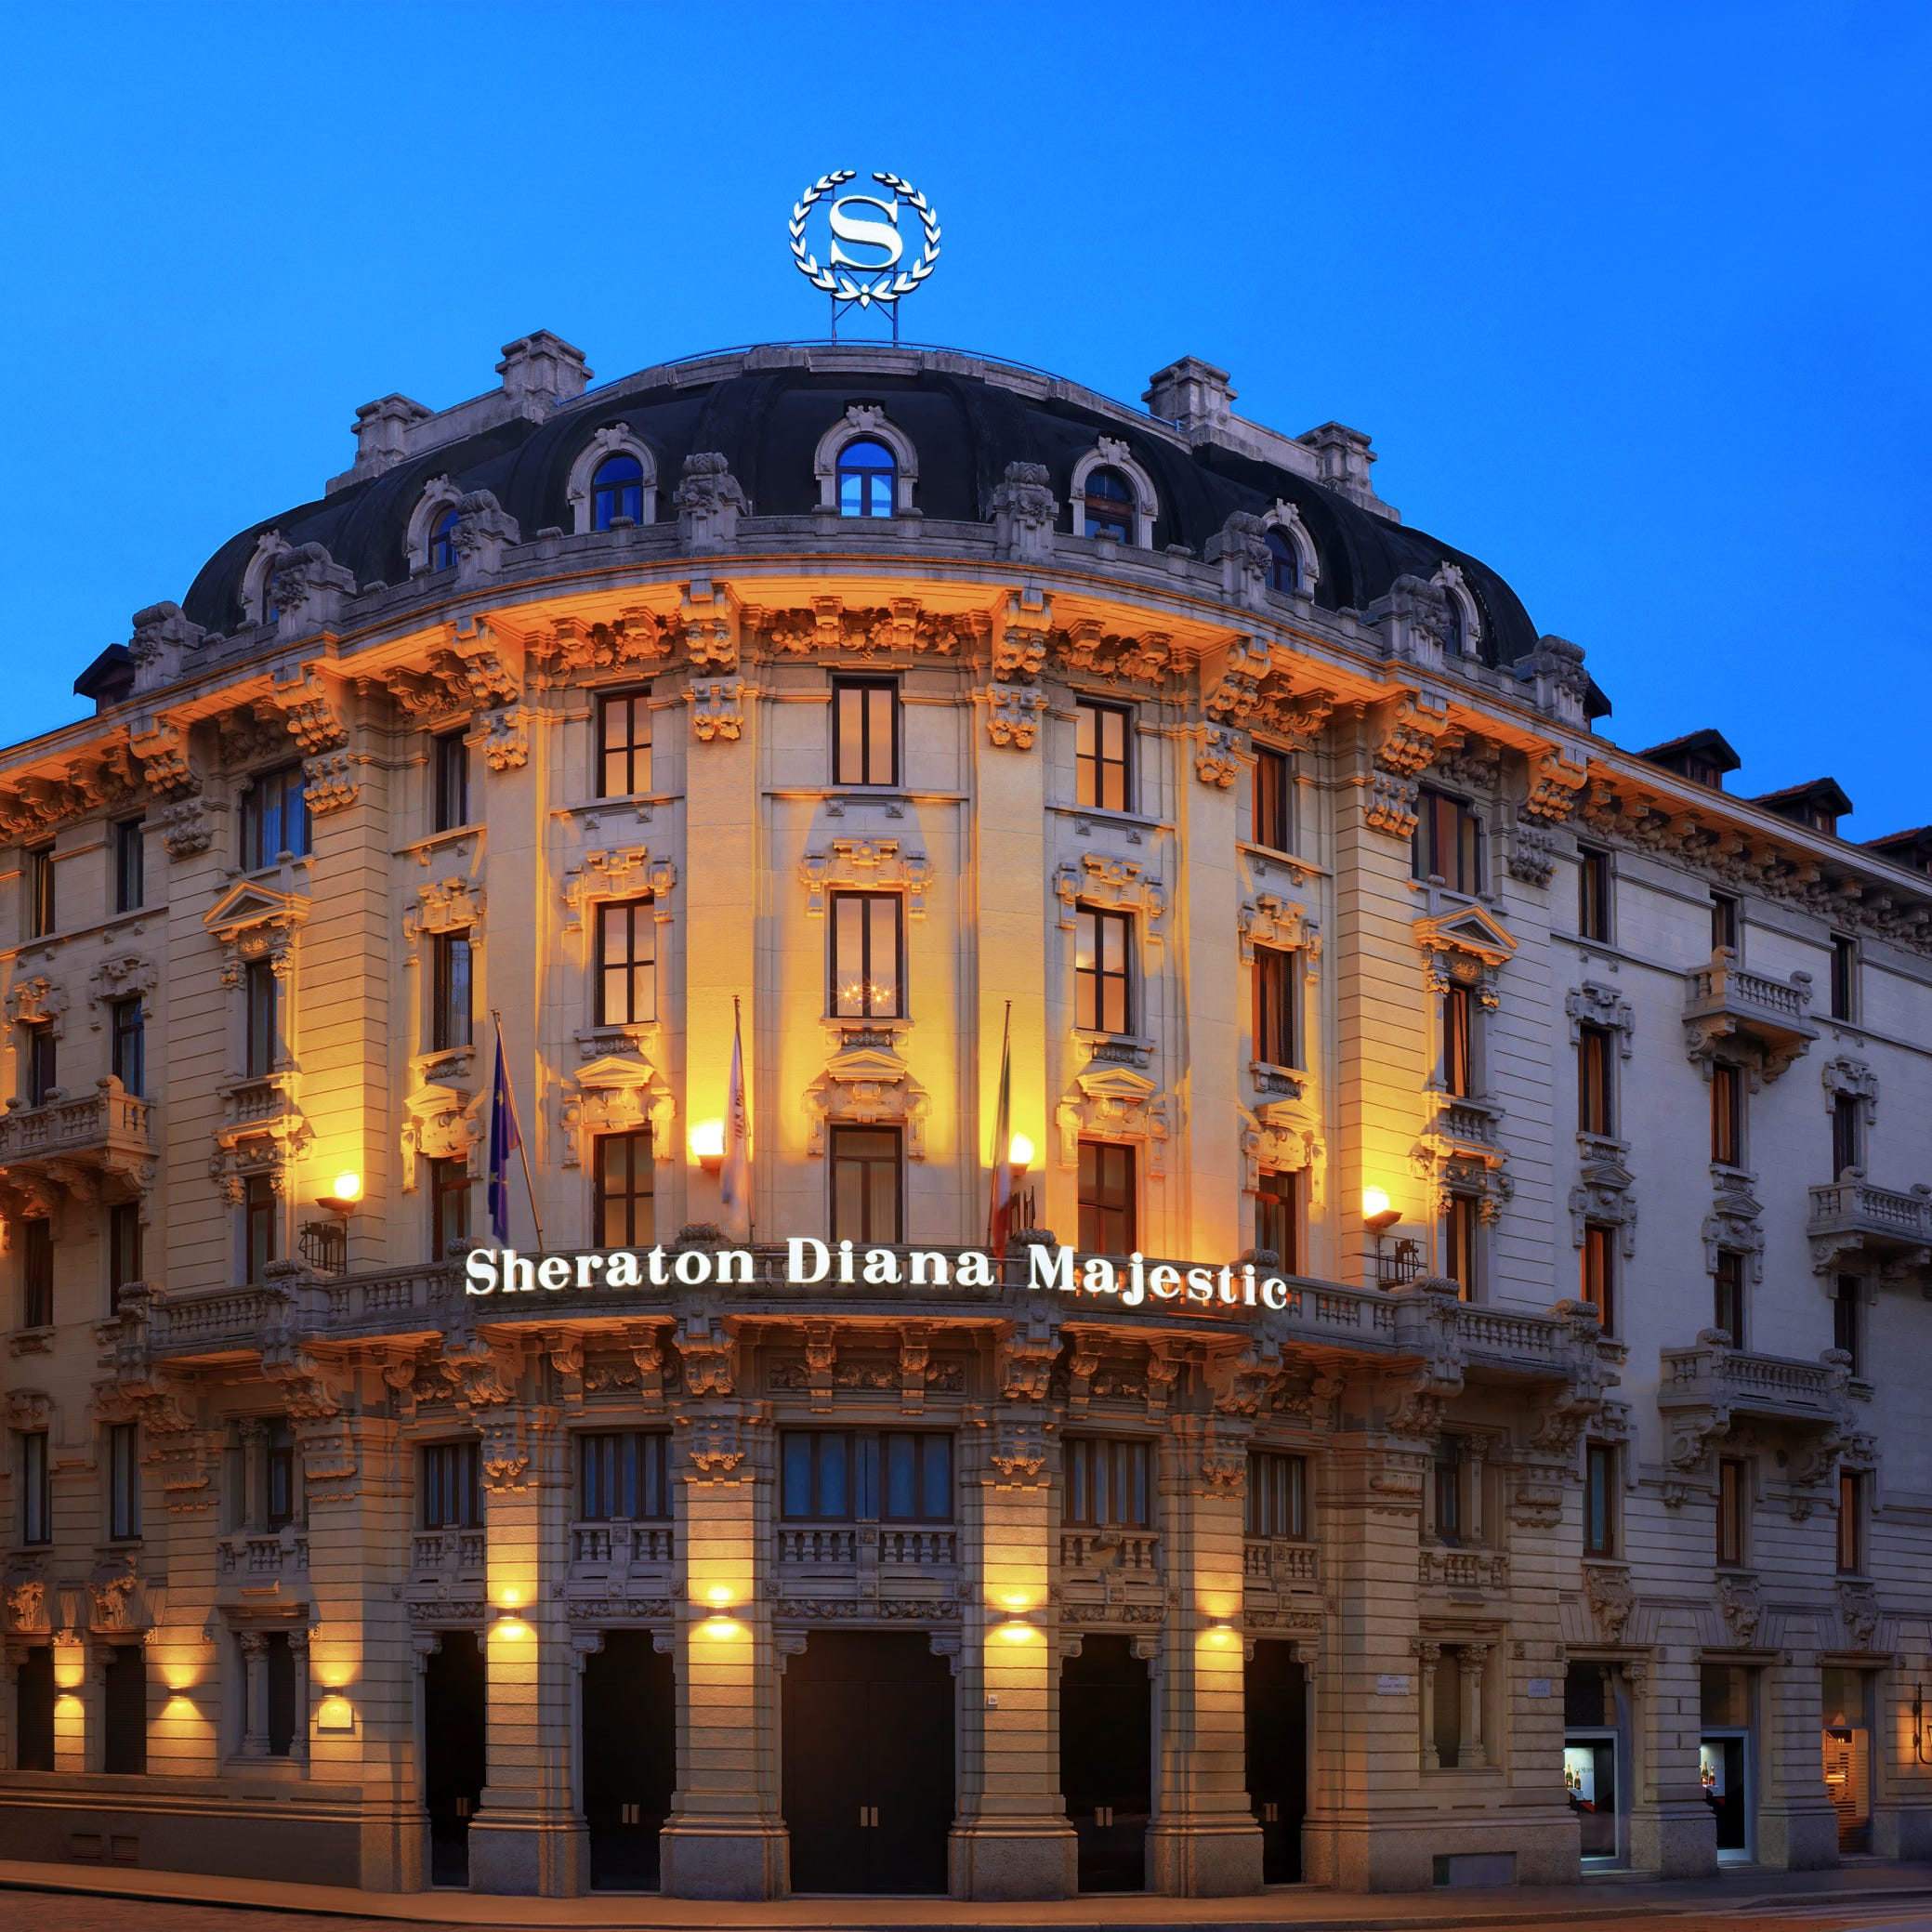 Marriott says as many as 500 million people who made reservations at Starwood properties worldwide may have had their personal information accessed in a breach that lasted as long as four years. Among those hotels are Westin Hotels & Resorts and Sheraton Hotels & Resorts including the Sheraton Diana Majestic in Milan, Italy, shown here.